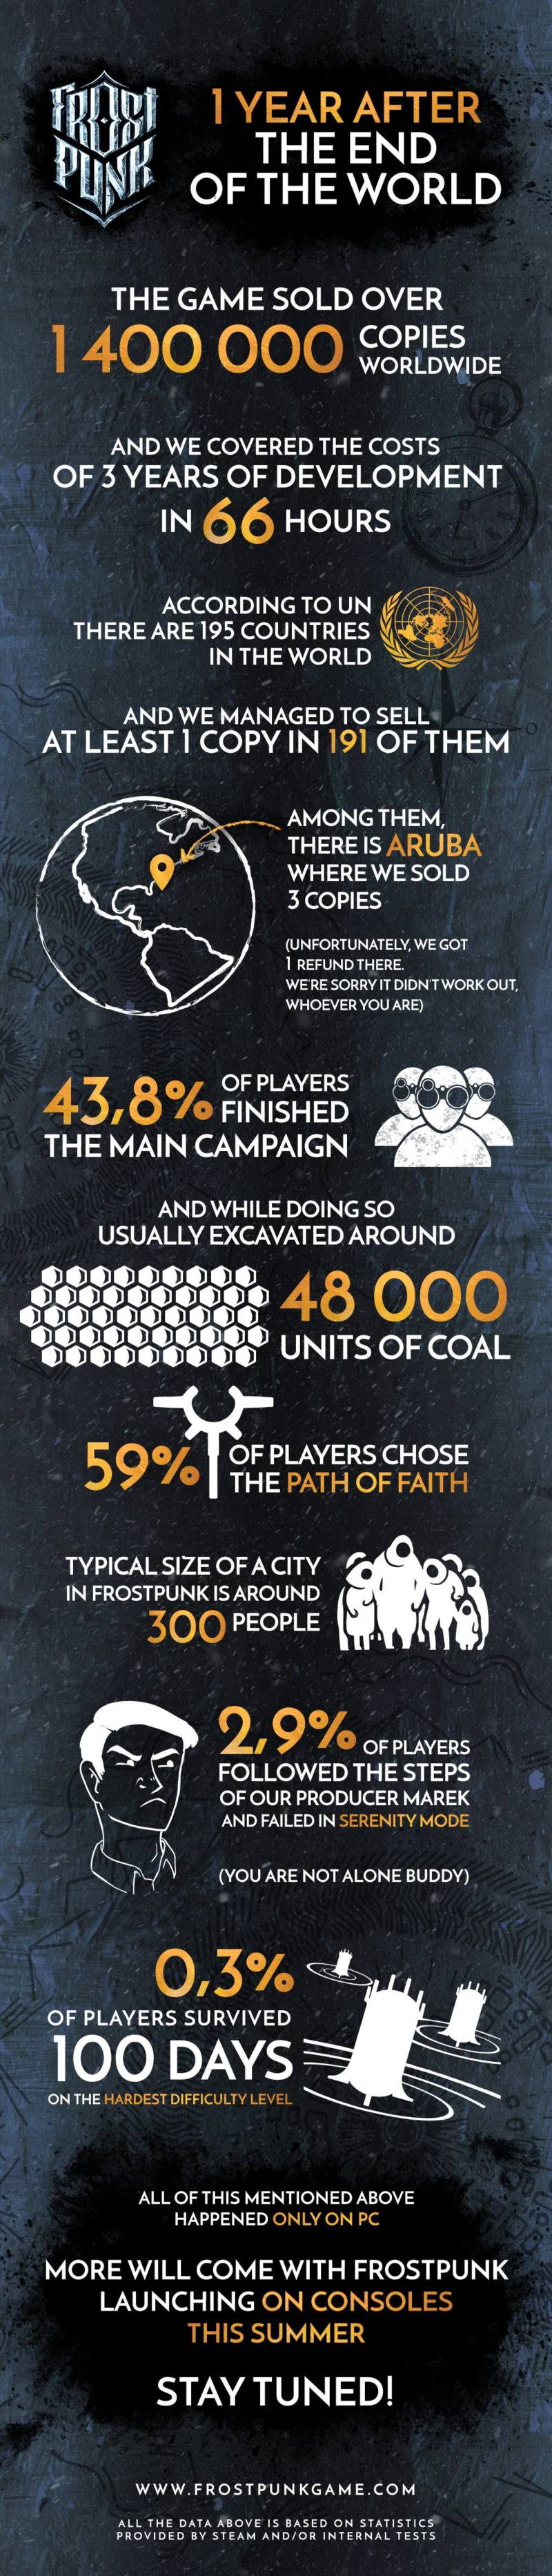 Frostpunk Selling 1.4m Copies Infographics All